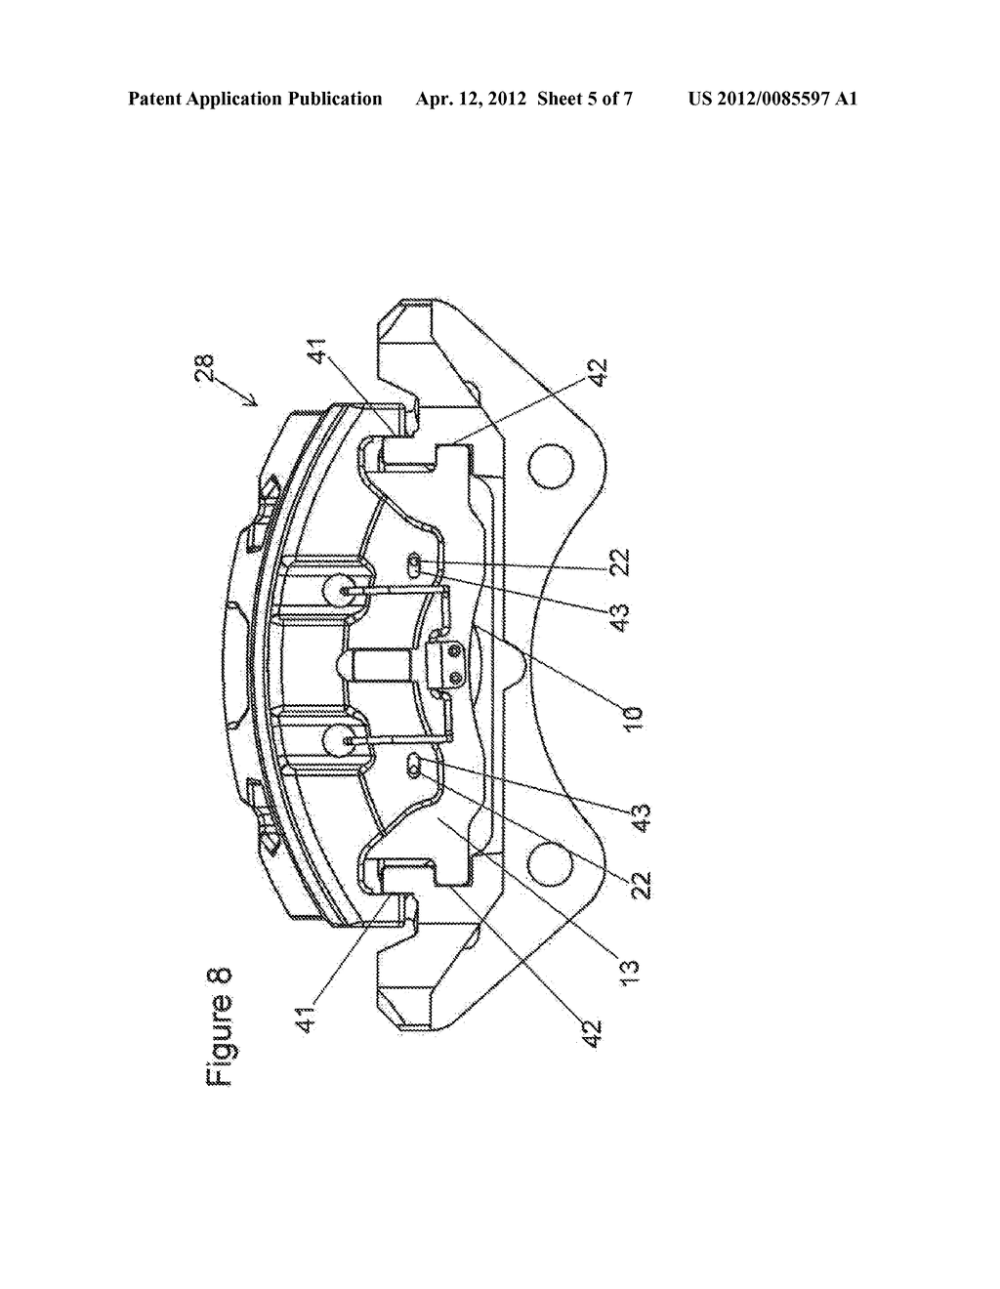 medium resolution of caliper assembly for disc brake system diagram schematic and image 06